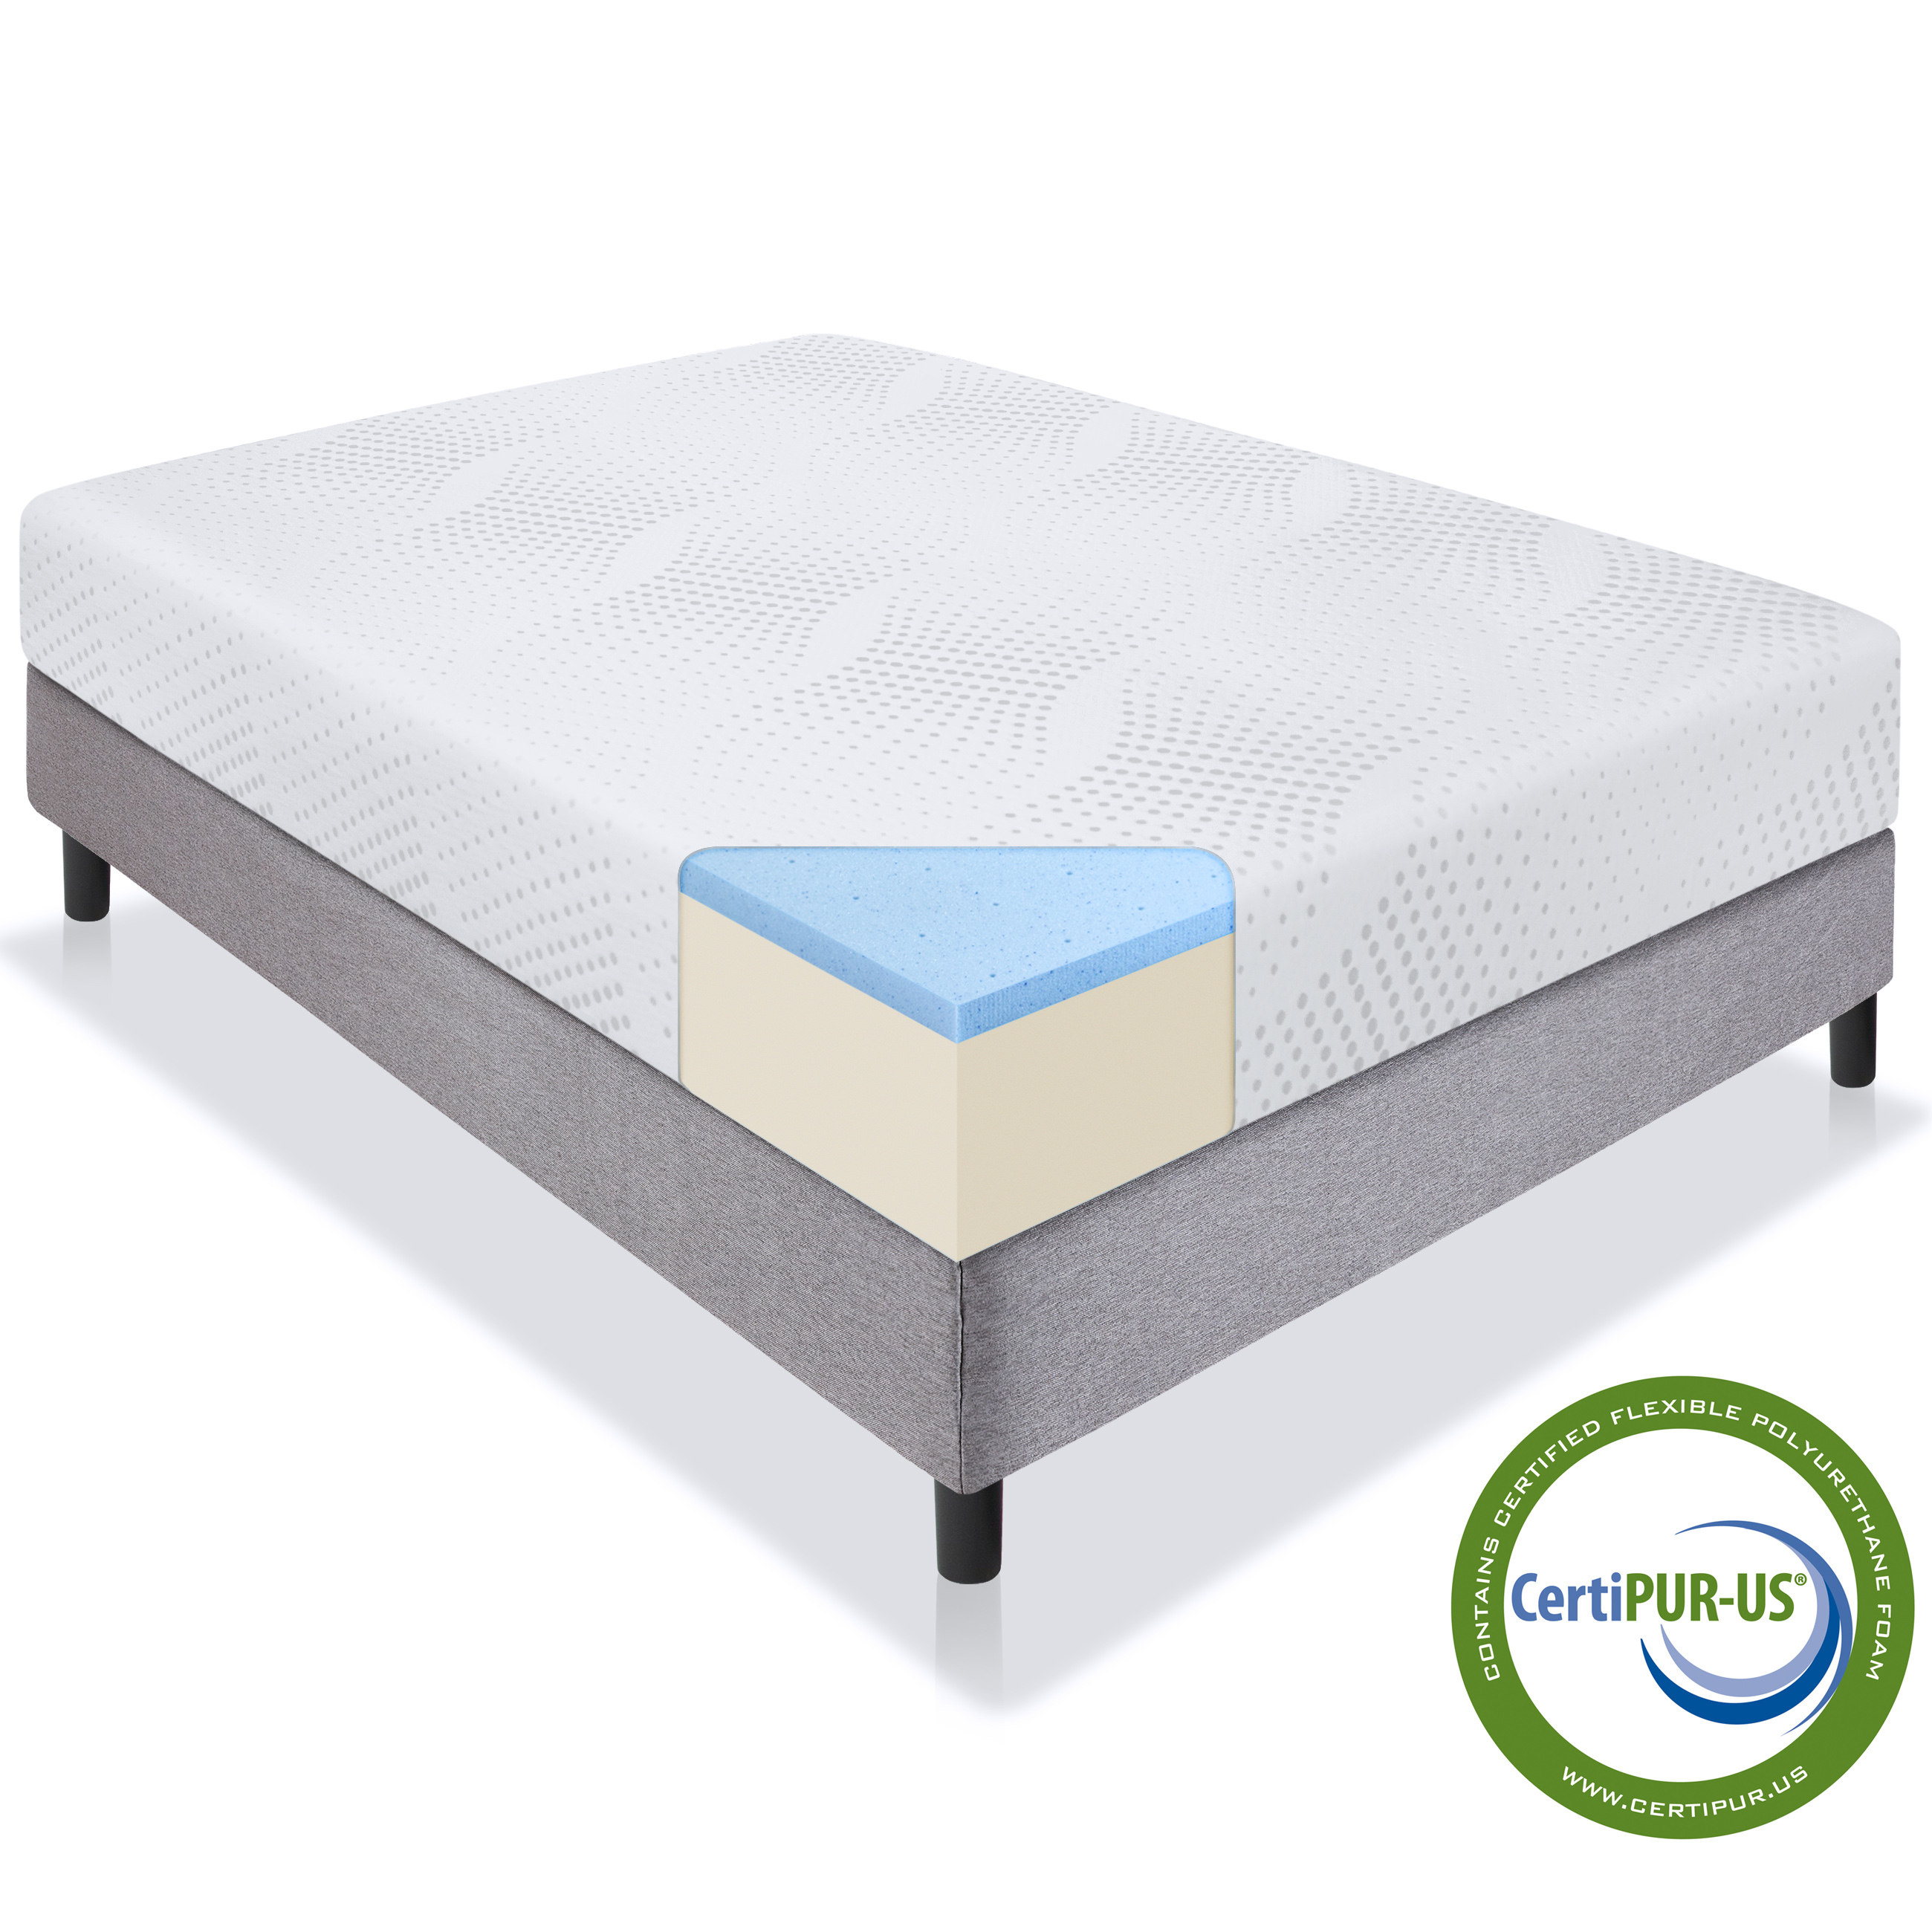 "Best Choice Products 10"" Dual Layered Gel Memory Foam Mattress Twin- CertiPUR-US Certified Foam"